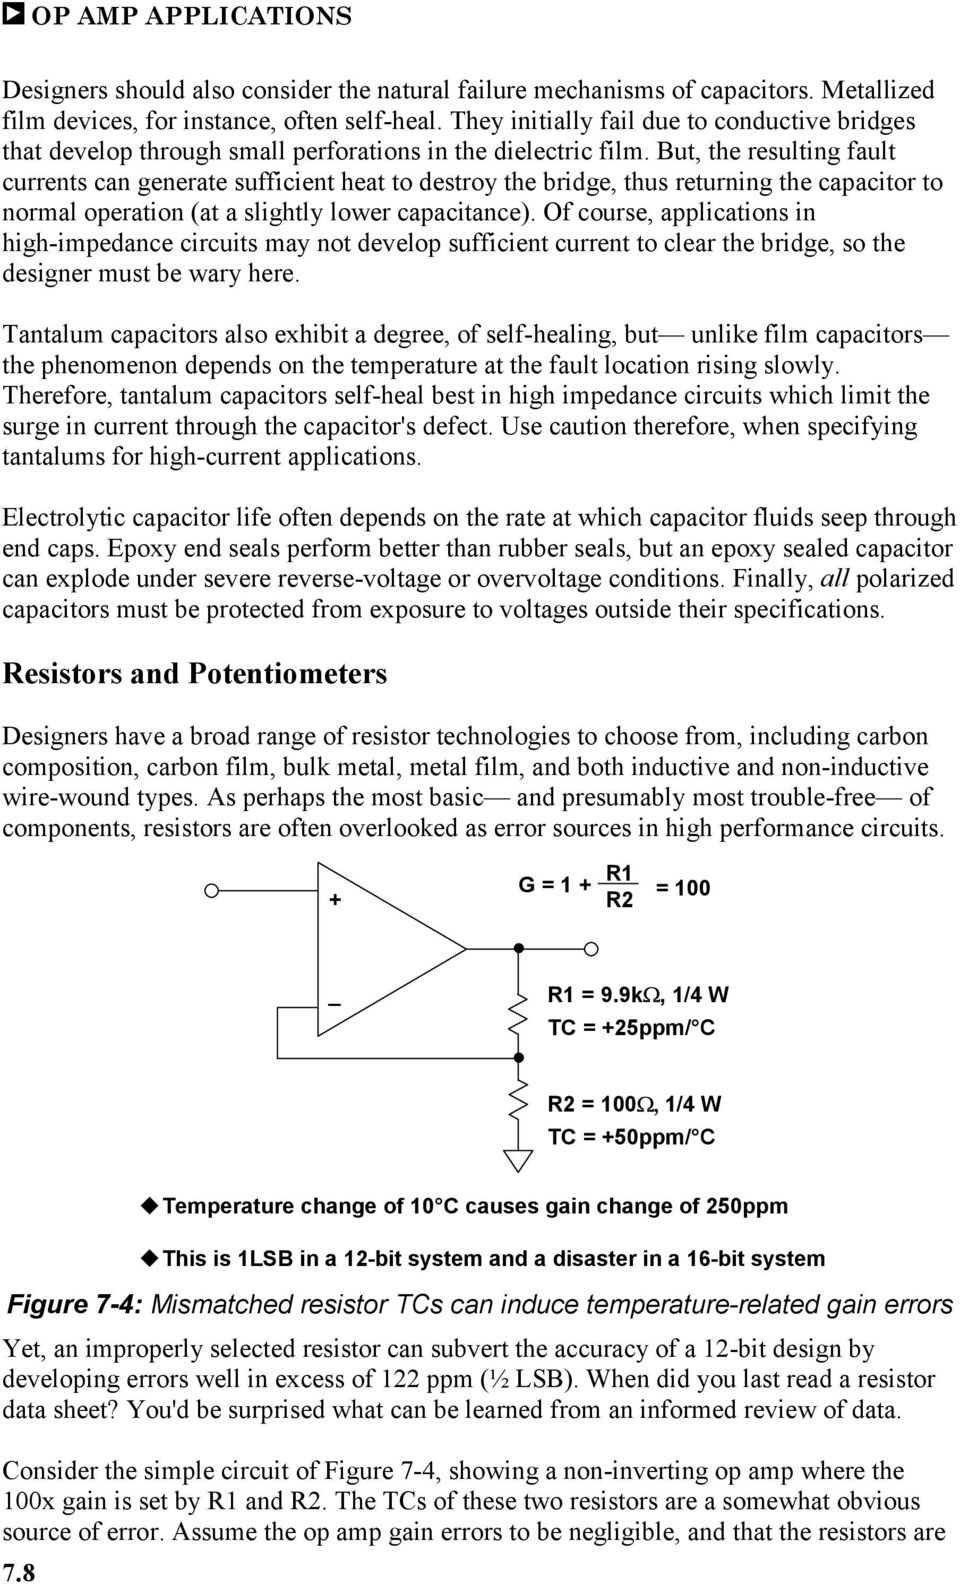 Hardware And Housekeeping Techniques Pdf Find The Thvenin Equivalent With Respect To 1nf Capacitor But Resulting Fault Currents Can Generate Sufficient Heat Destroy Bridge Thus